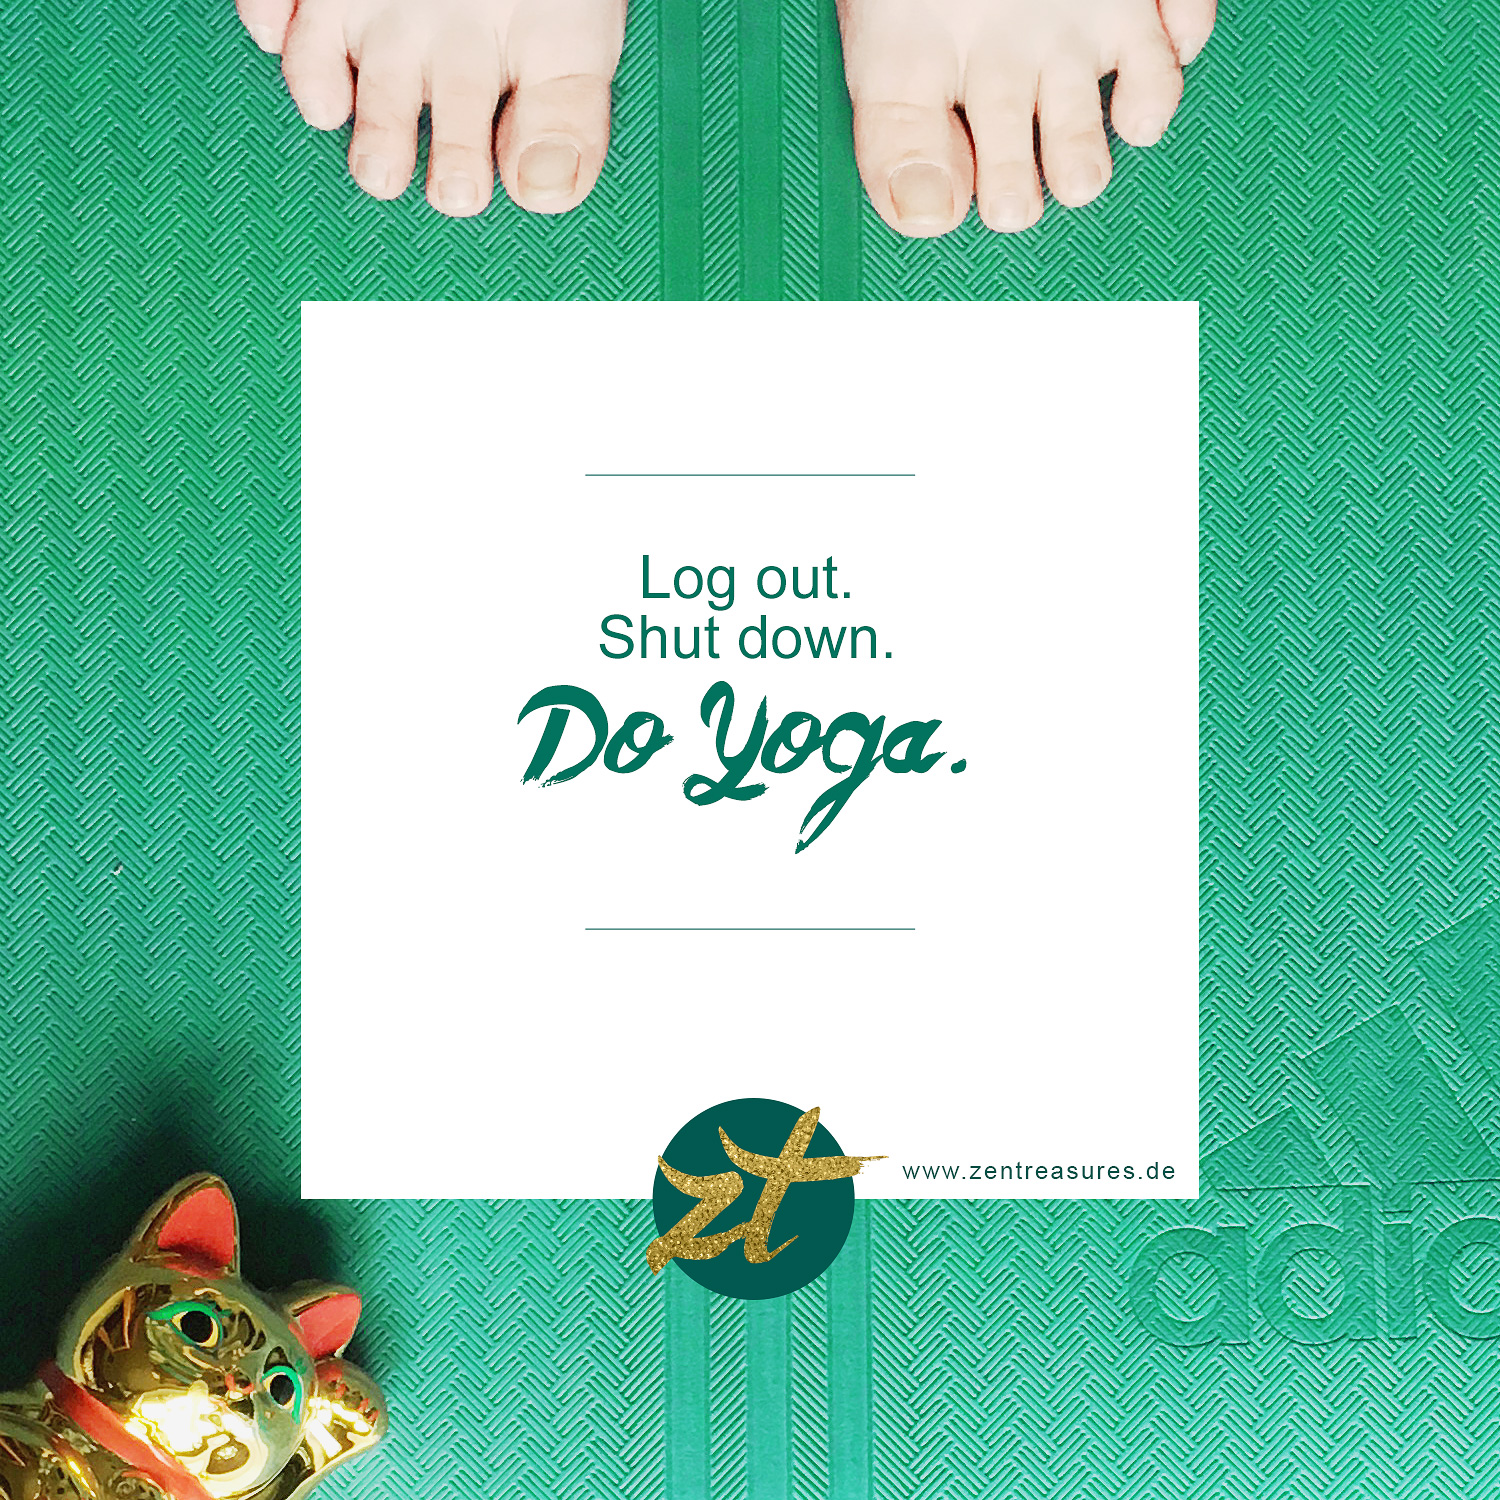 Log out. Shut down. Do Yoga.